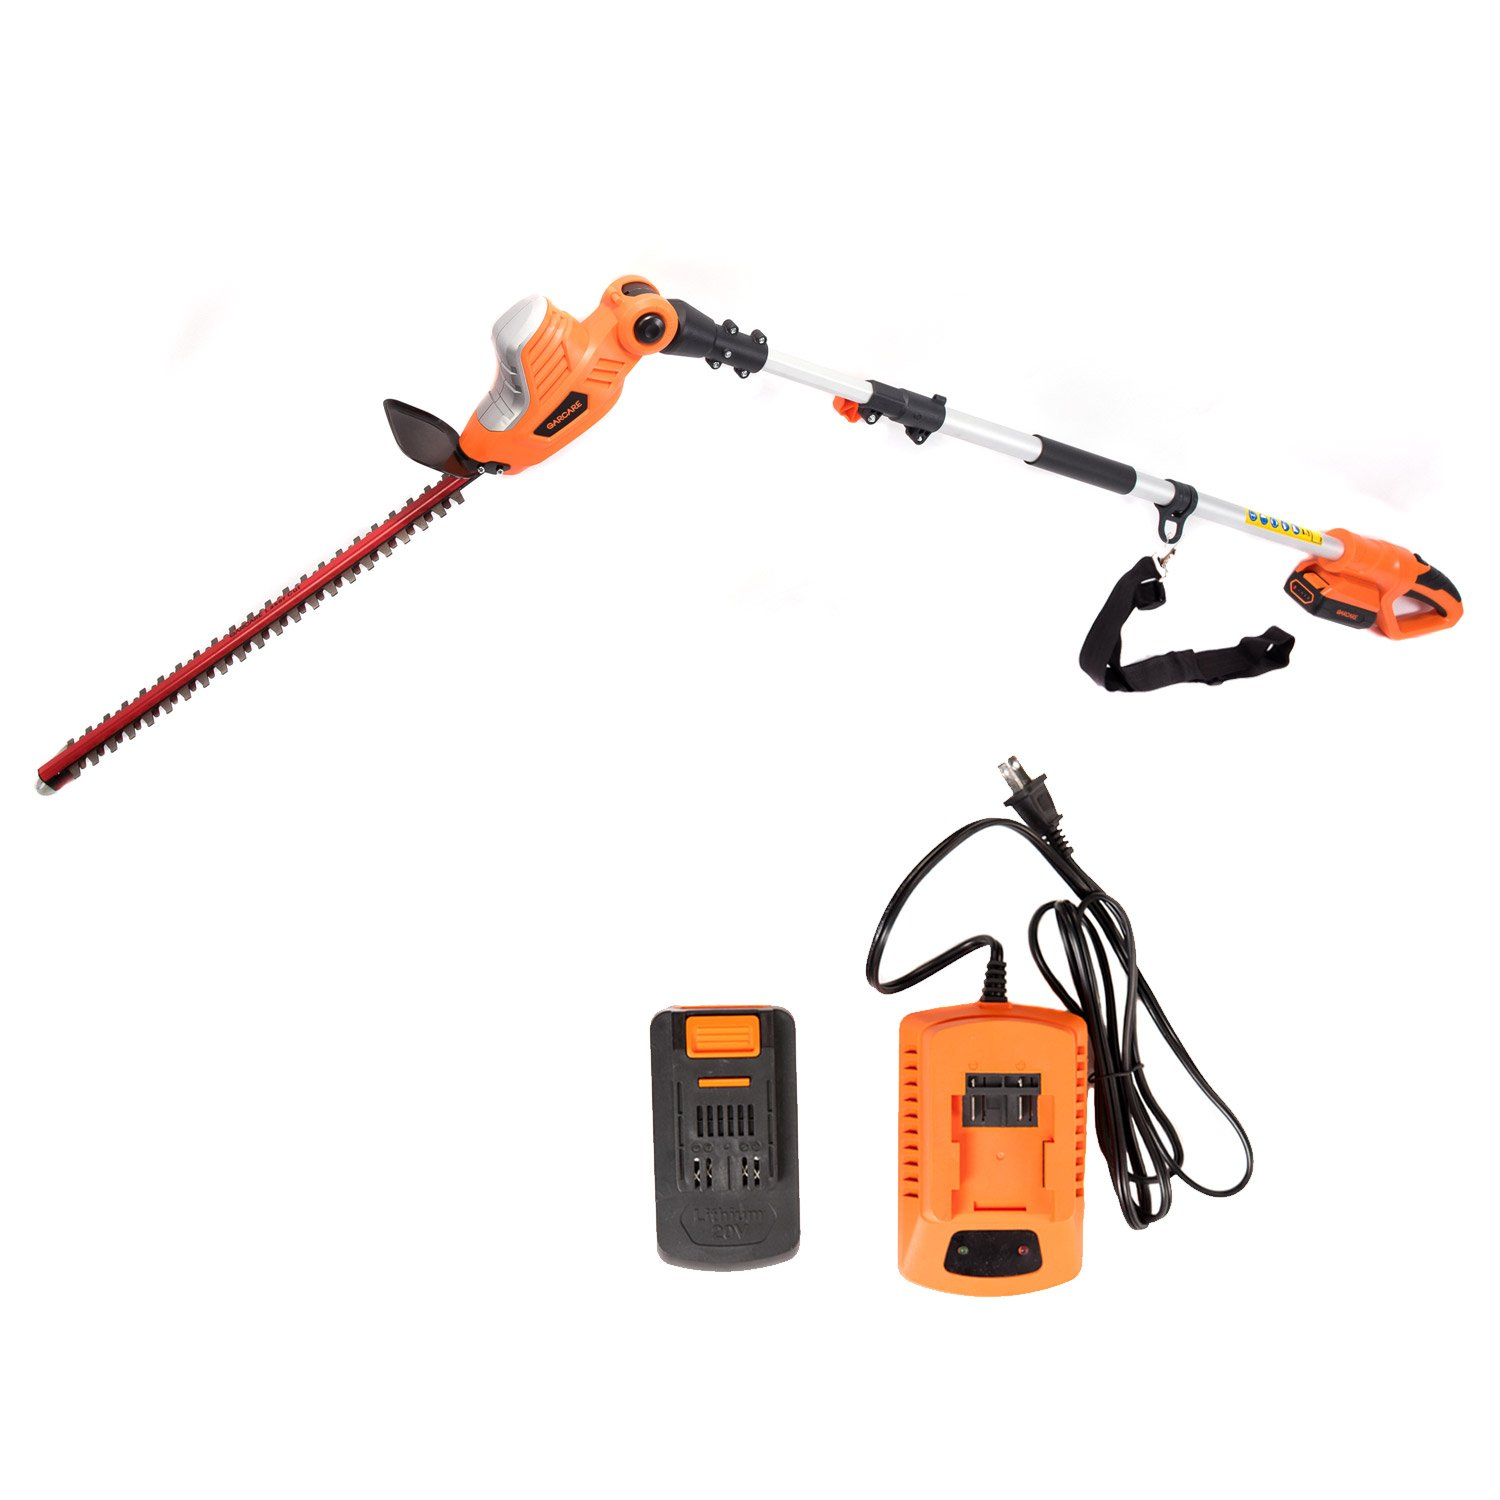 GARCARE 20V Li-ion Cordless Pole Hedge Trimmer with 20-Inch Laser Cutting Blade